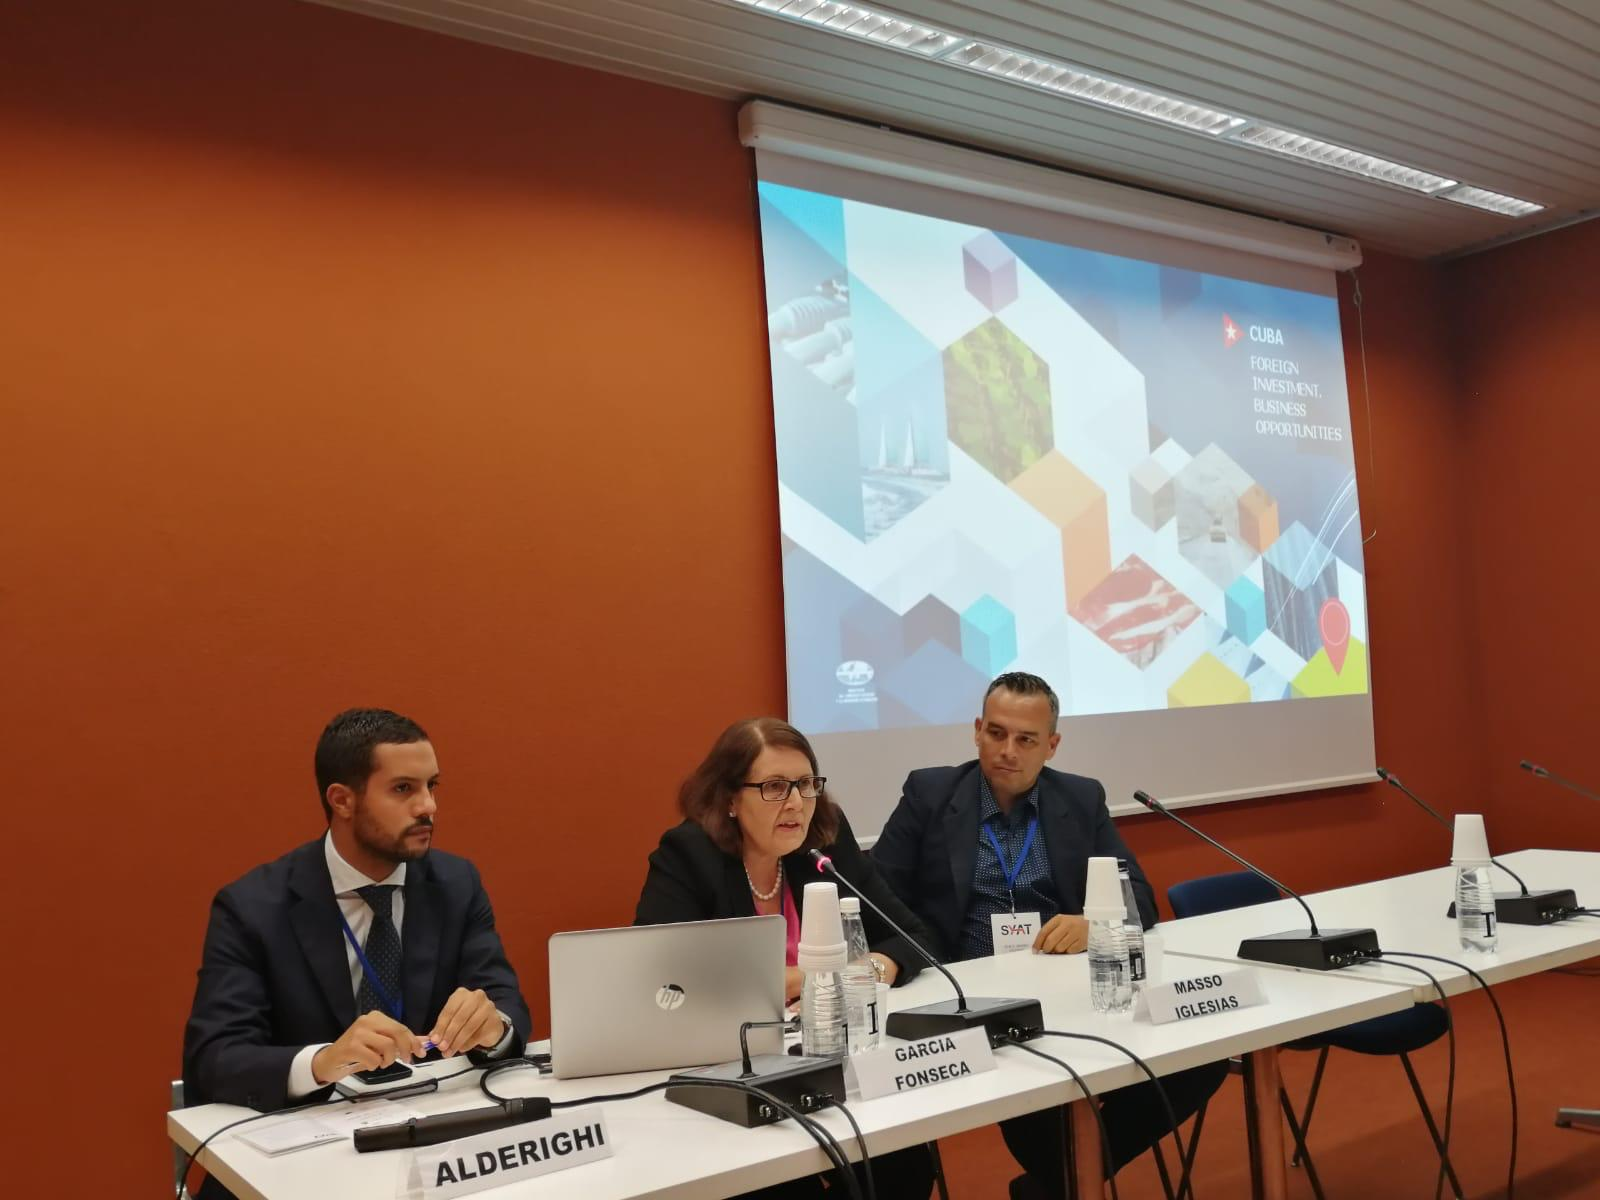 UNIDO ITPO Italy organized a study tour in FVG Region focused on maritime sector for two Cuban delegates